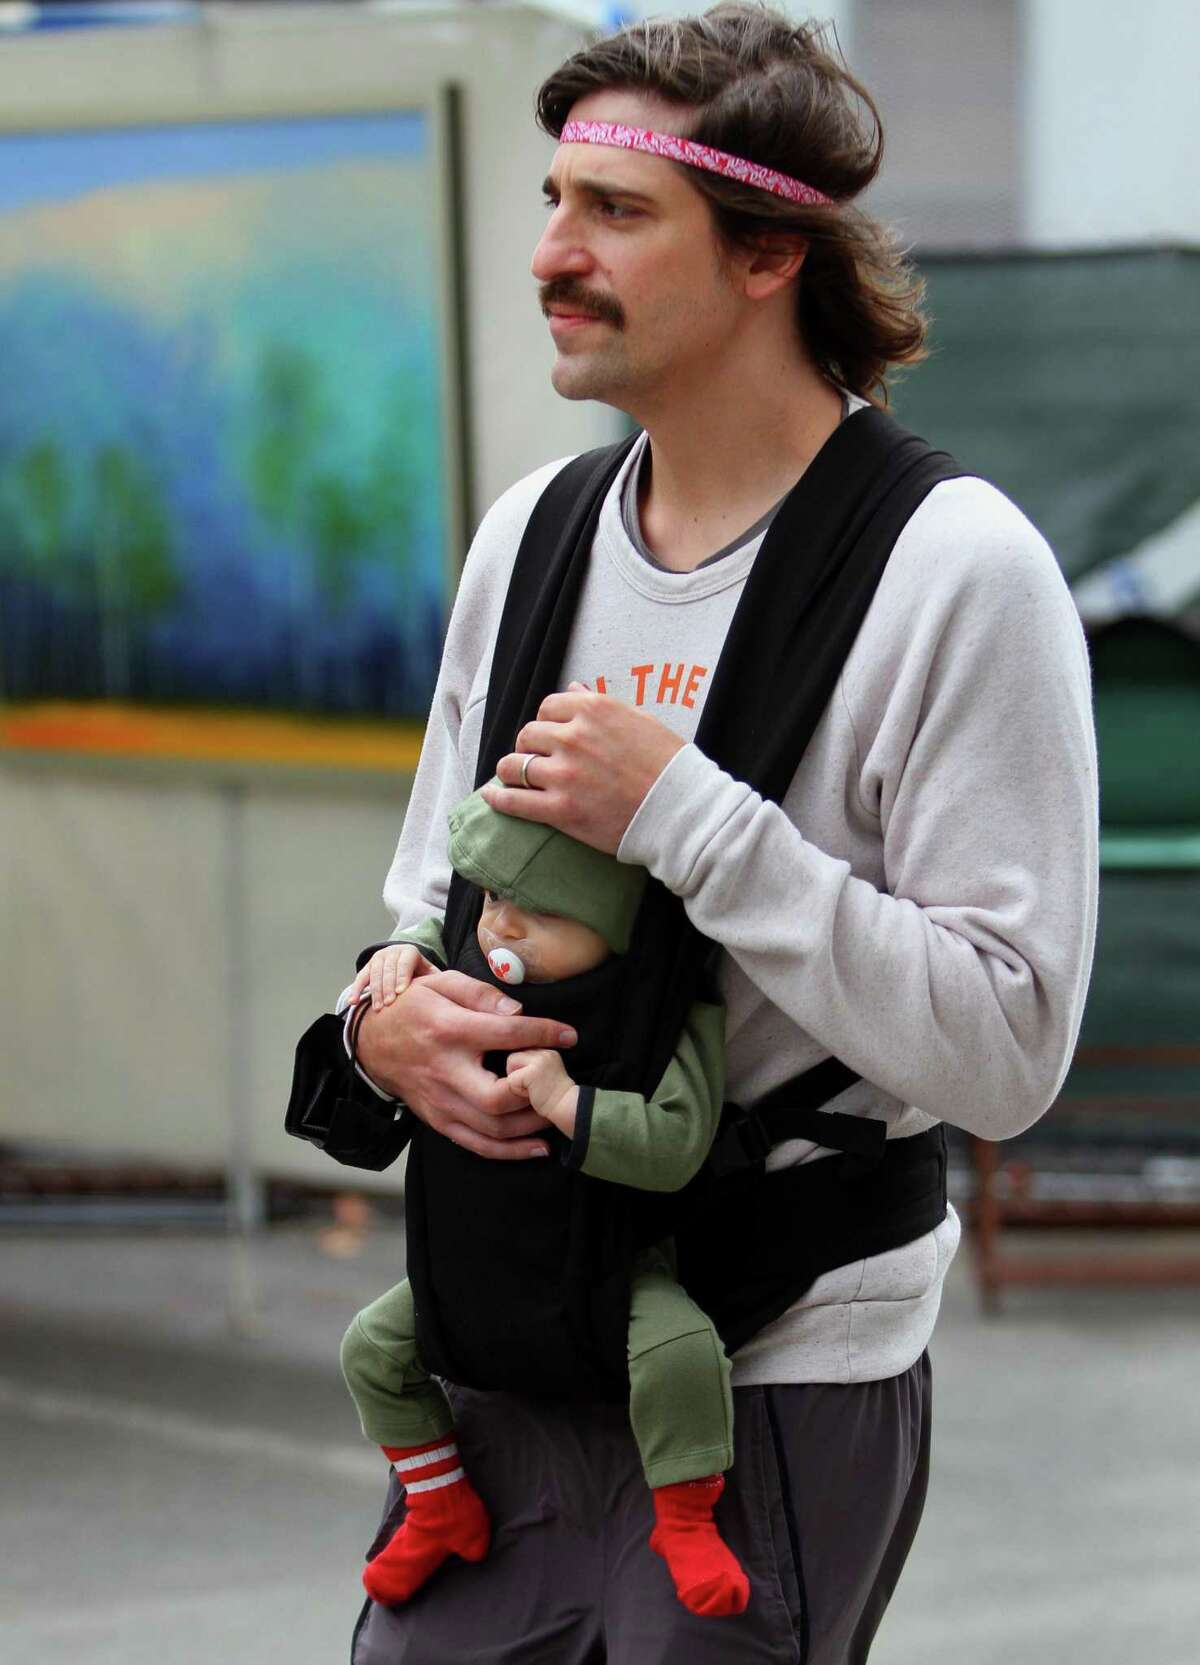 Stephen Puschel, of Cos Cob, carries his three-month-old son Baz as they attend Bruce Museum's 40th annual outdoor Art Festival held on the museum grounds in Greenwich, Conn., on Saturday October 9, 2021. The festival features original work by artists and craftspeople from around the country. All artists attend in person, and all works are for sale. The hours are 10 a.m. to 5 p.m. on Sunday. Tickets are available at BruceMuseum.org.